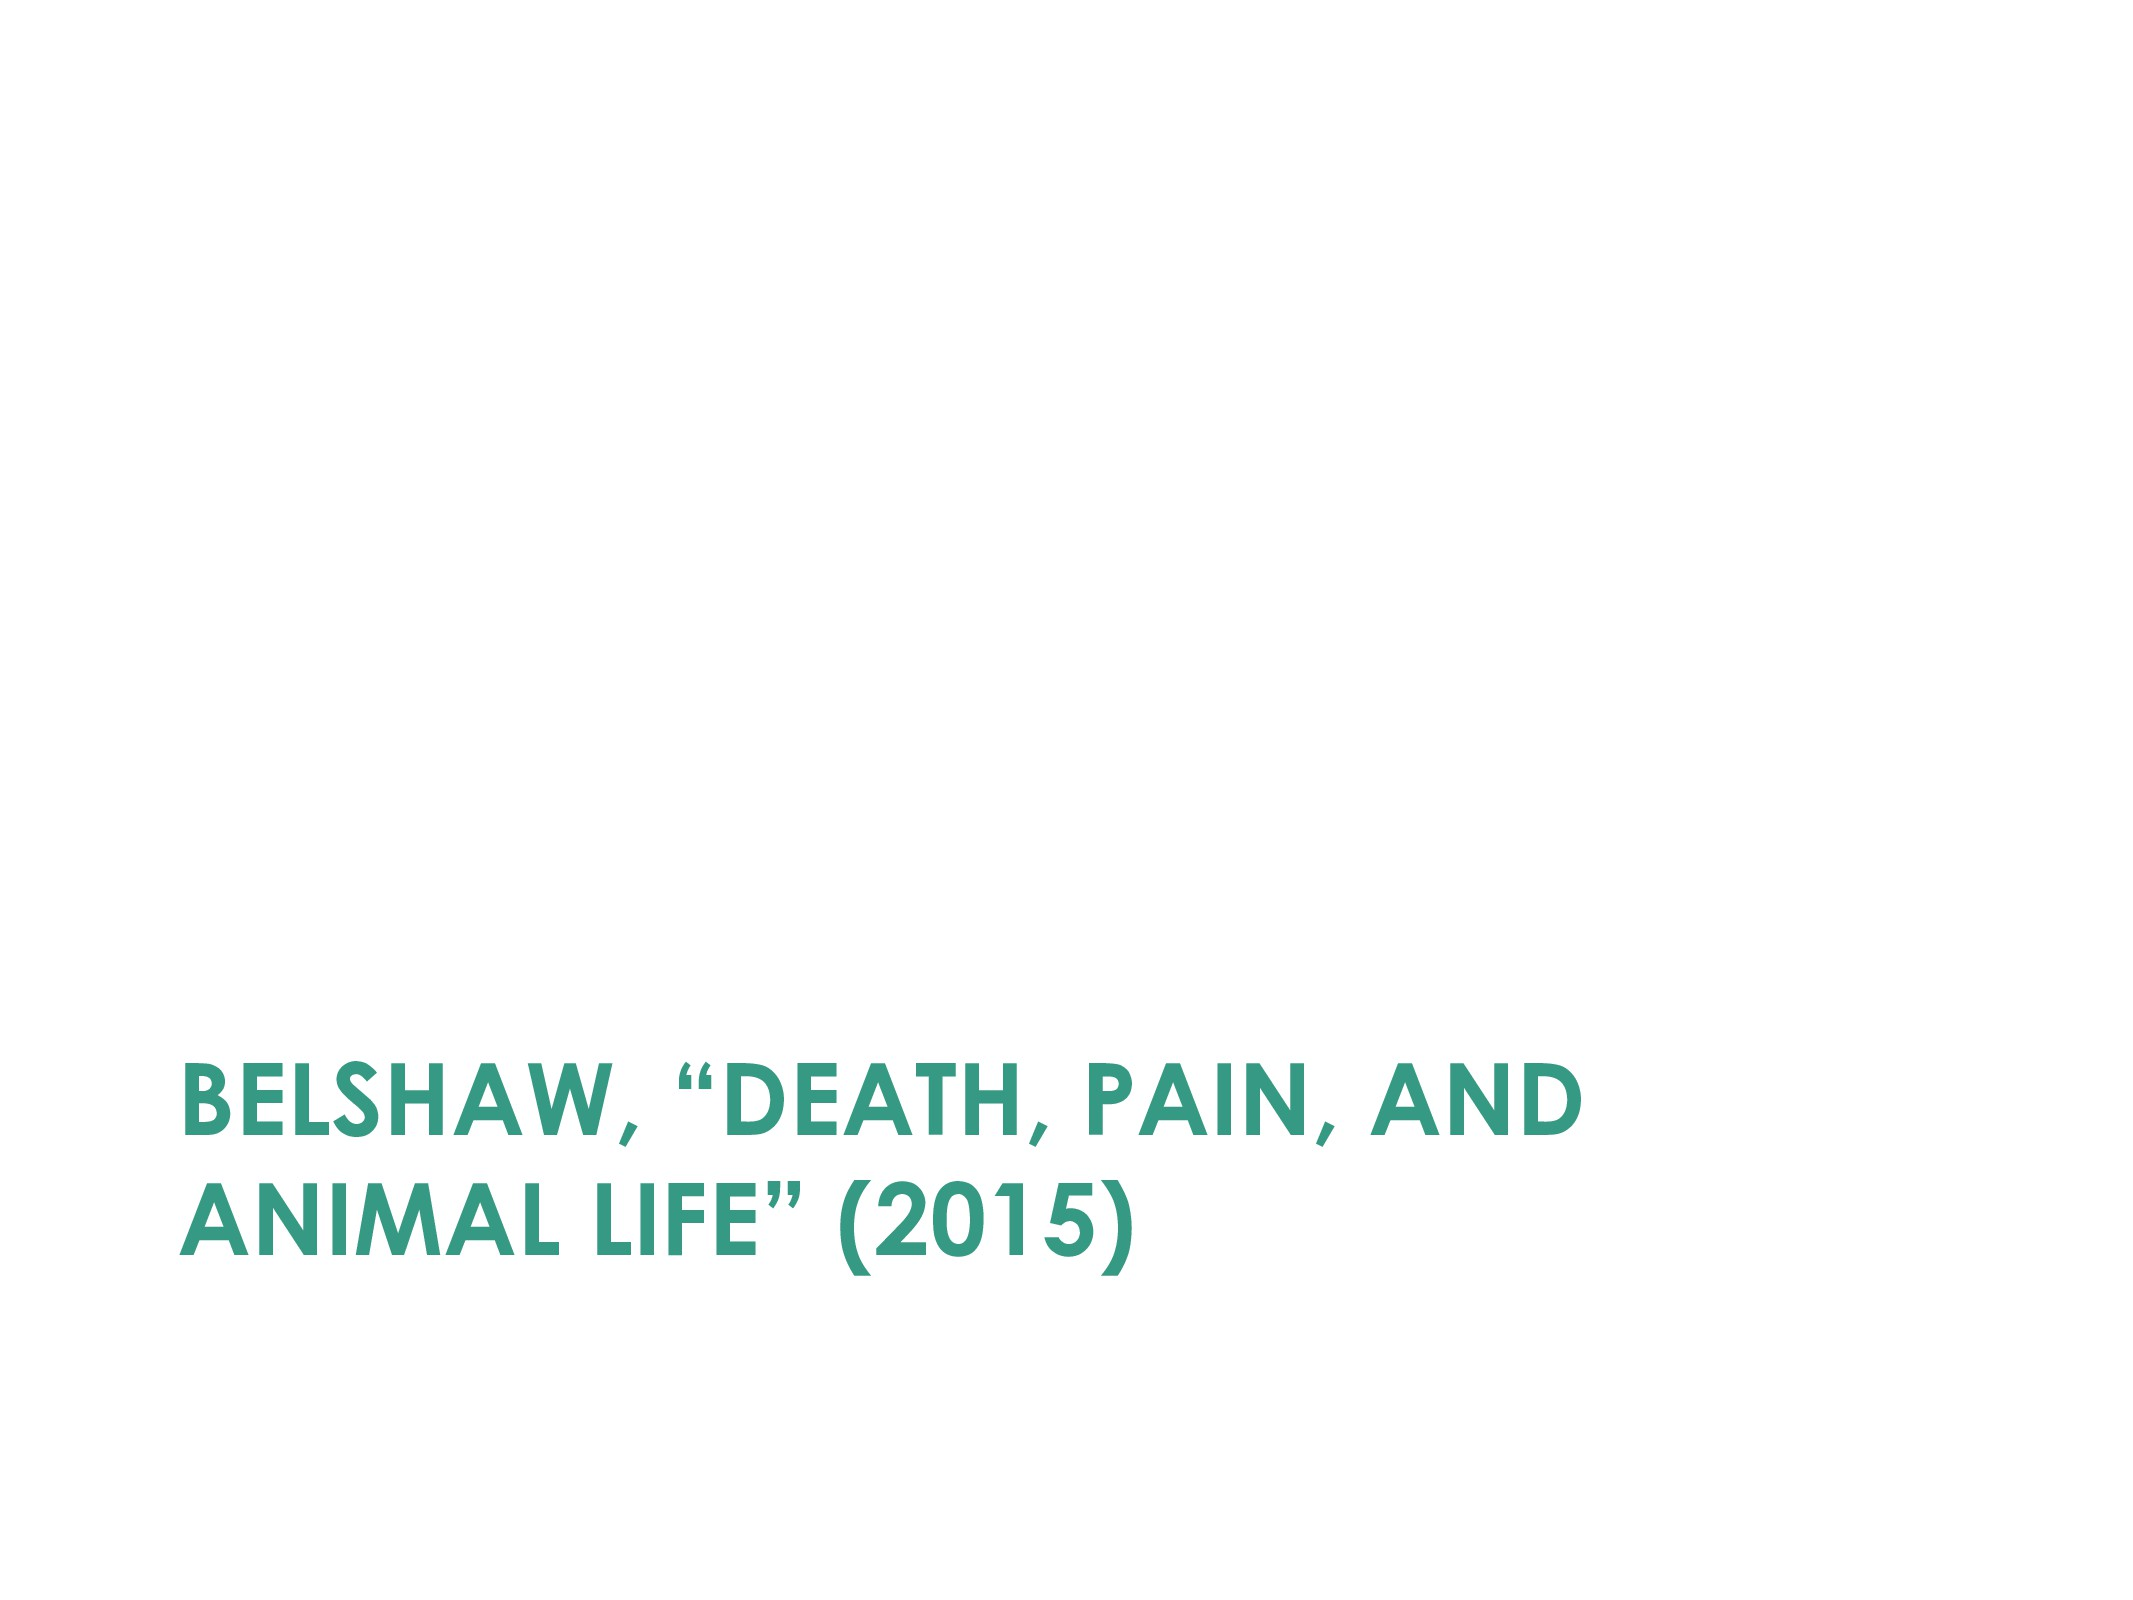 """BELSHAW, """"DEATH, PAIN, AND ANIMAL LIFE"""" (2015)"""